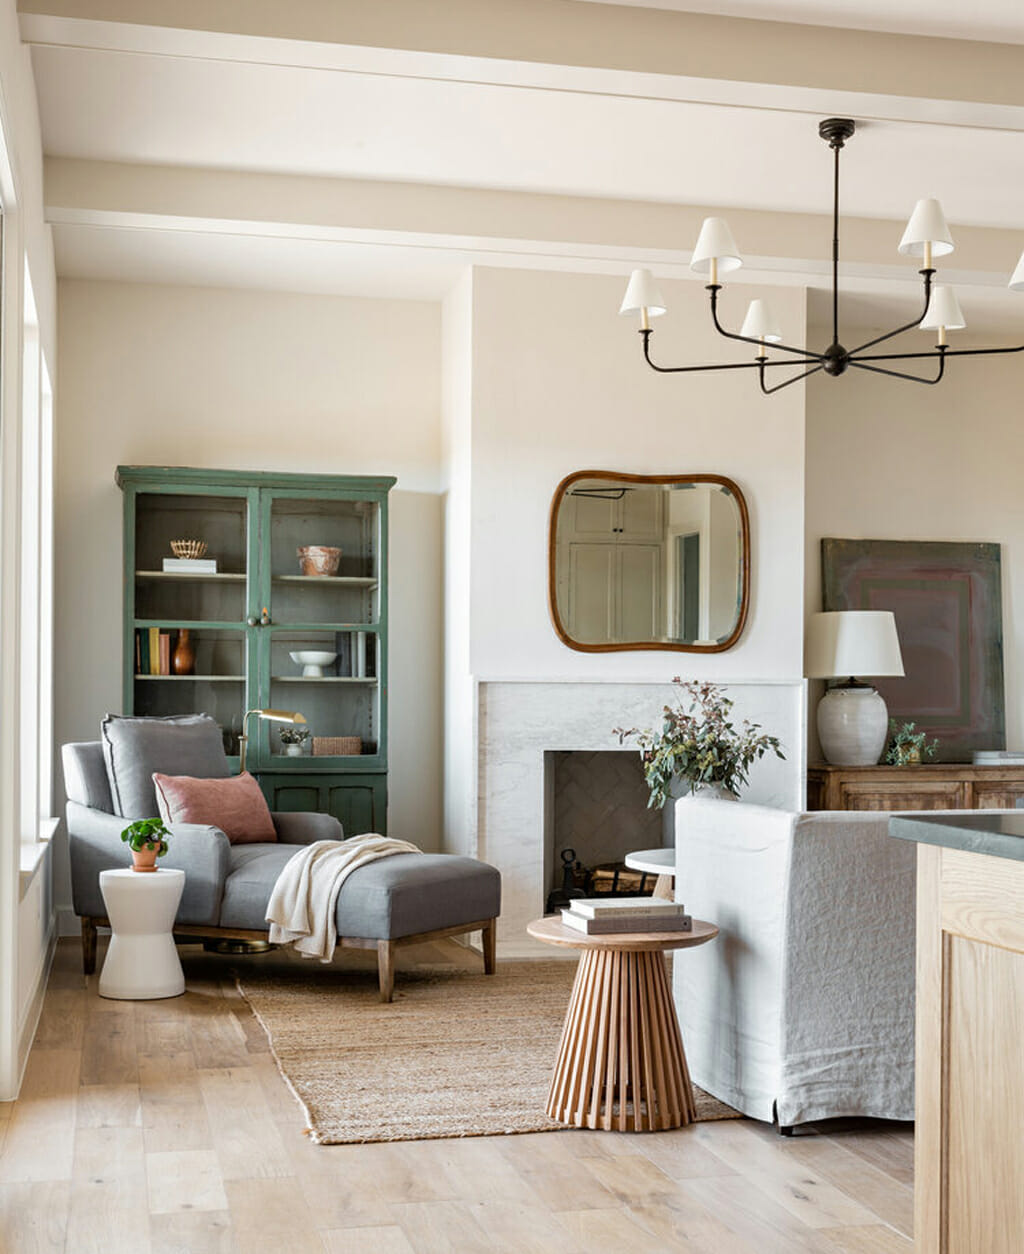 Sherwin-Williams Shoji White SW 7042 as a main neutral by High Street Homes for The Parks Home project